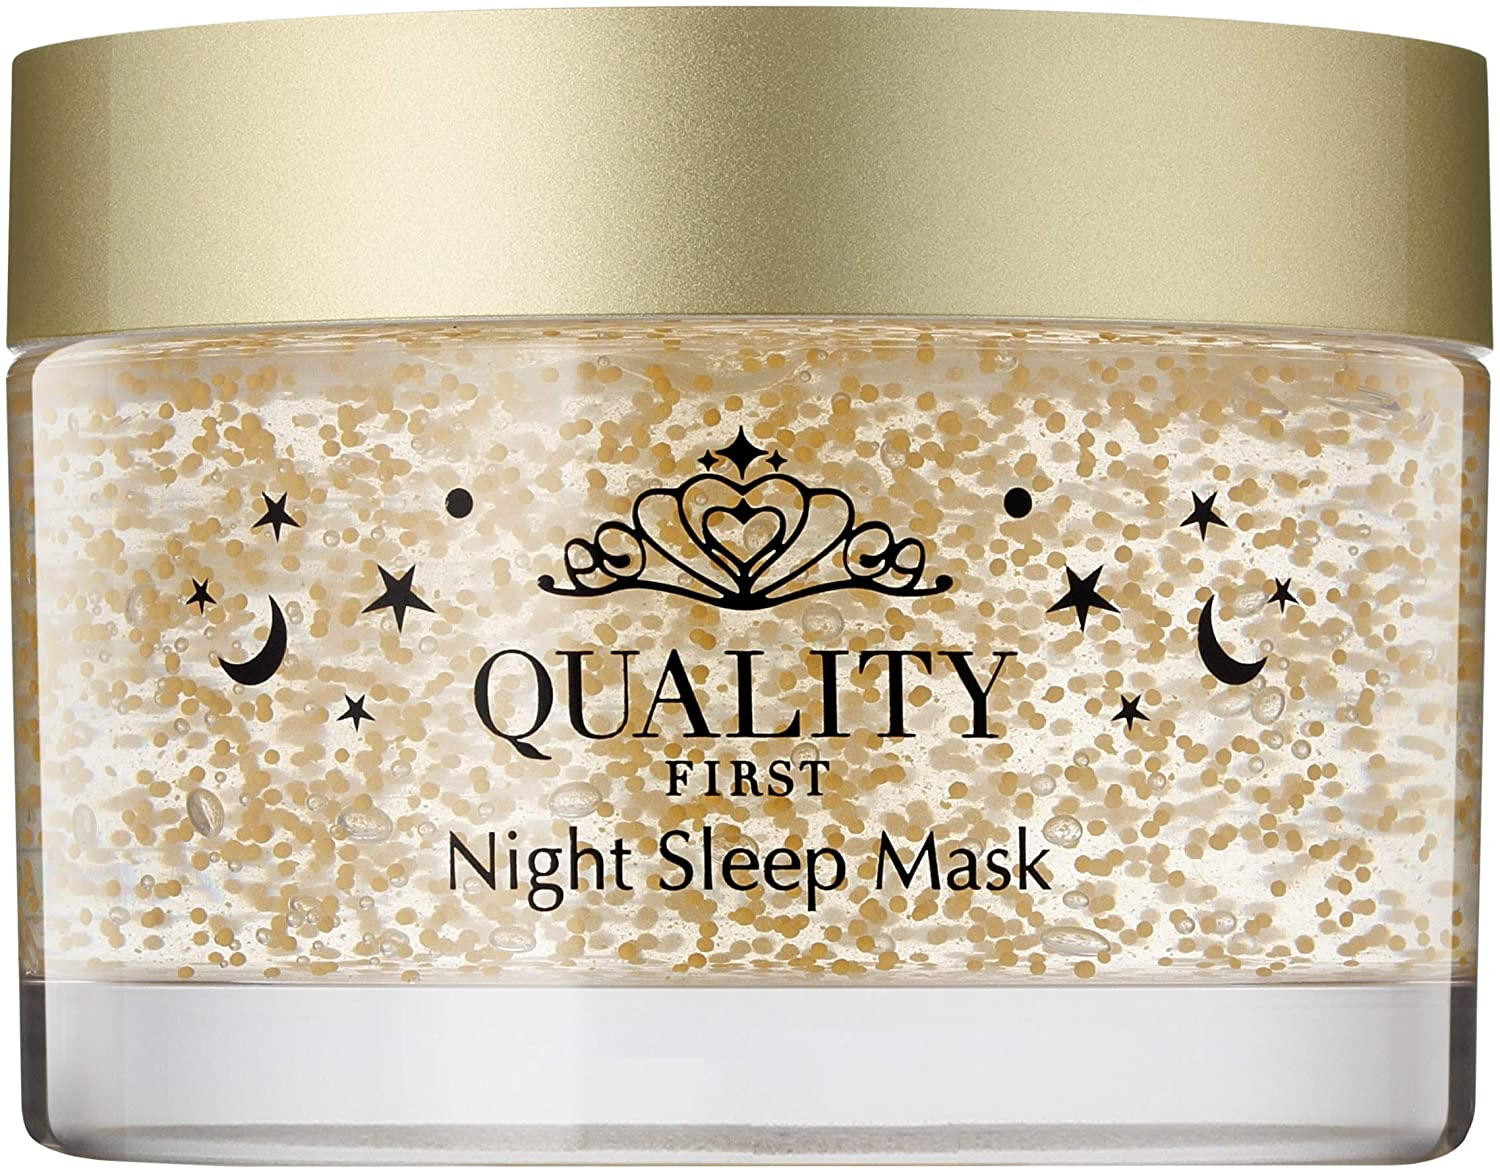 Quality 1st Night Sleep Mask